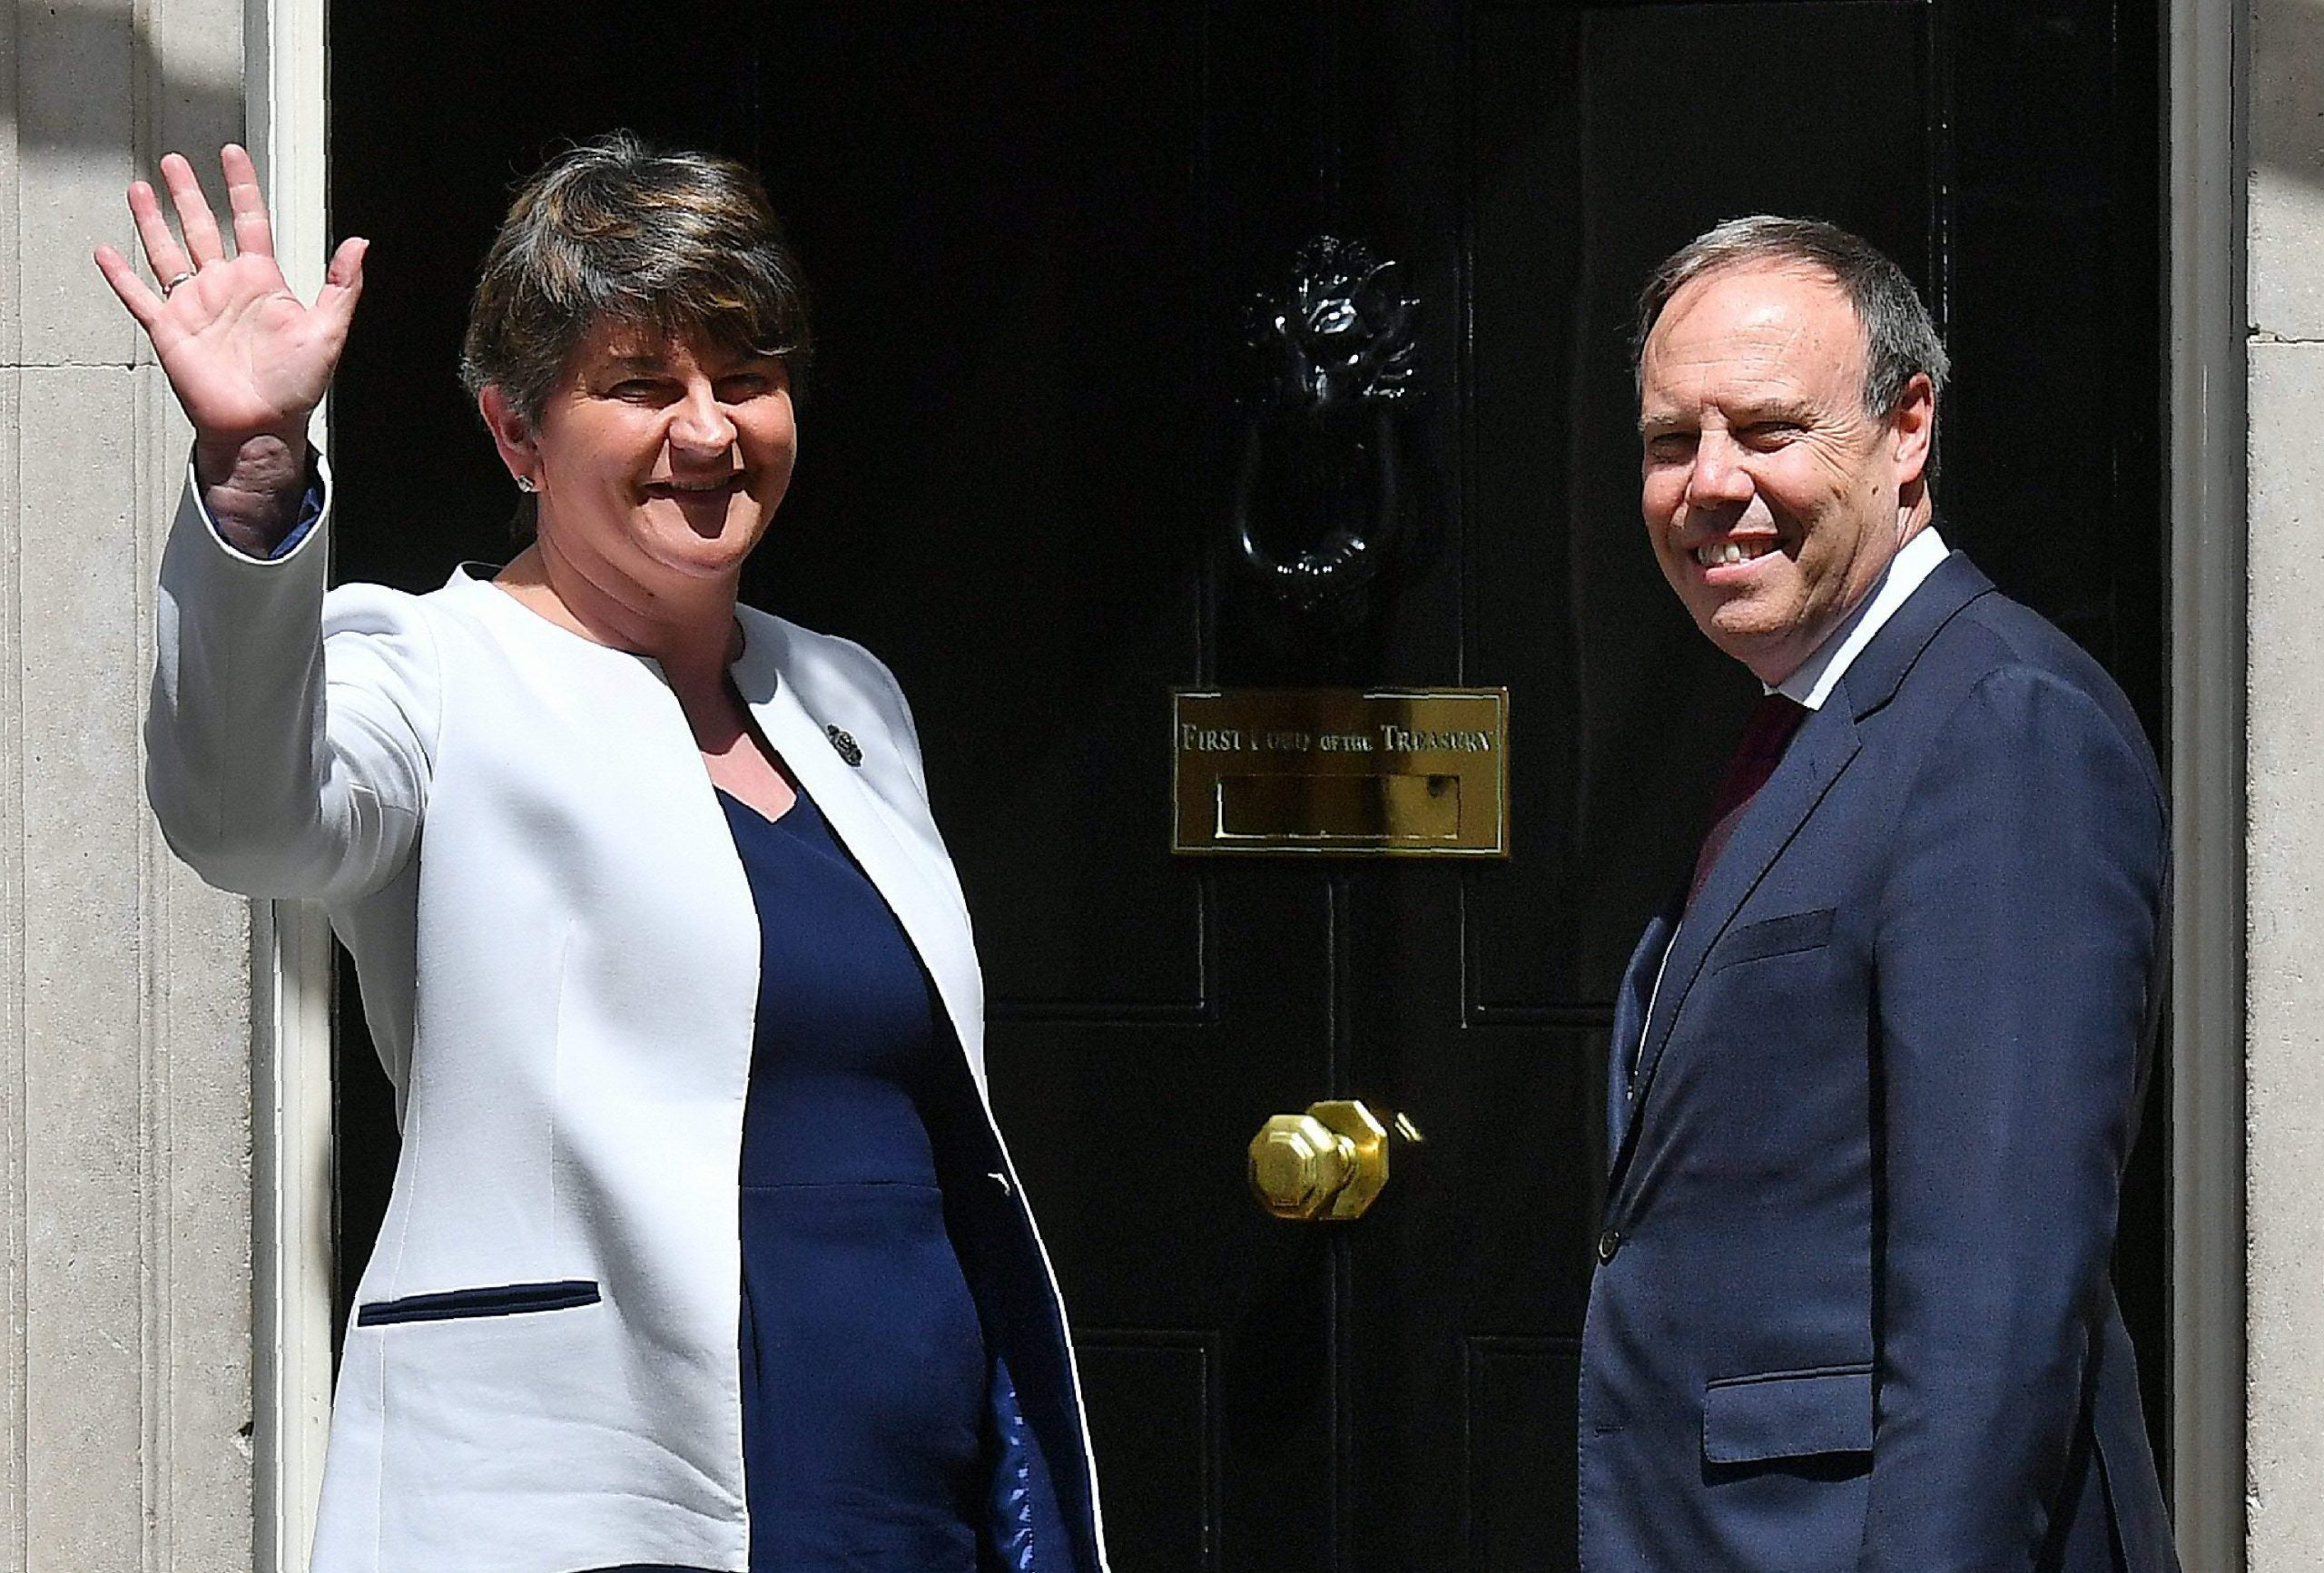 The DUP has gone from party of protest to party of power